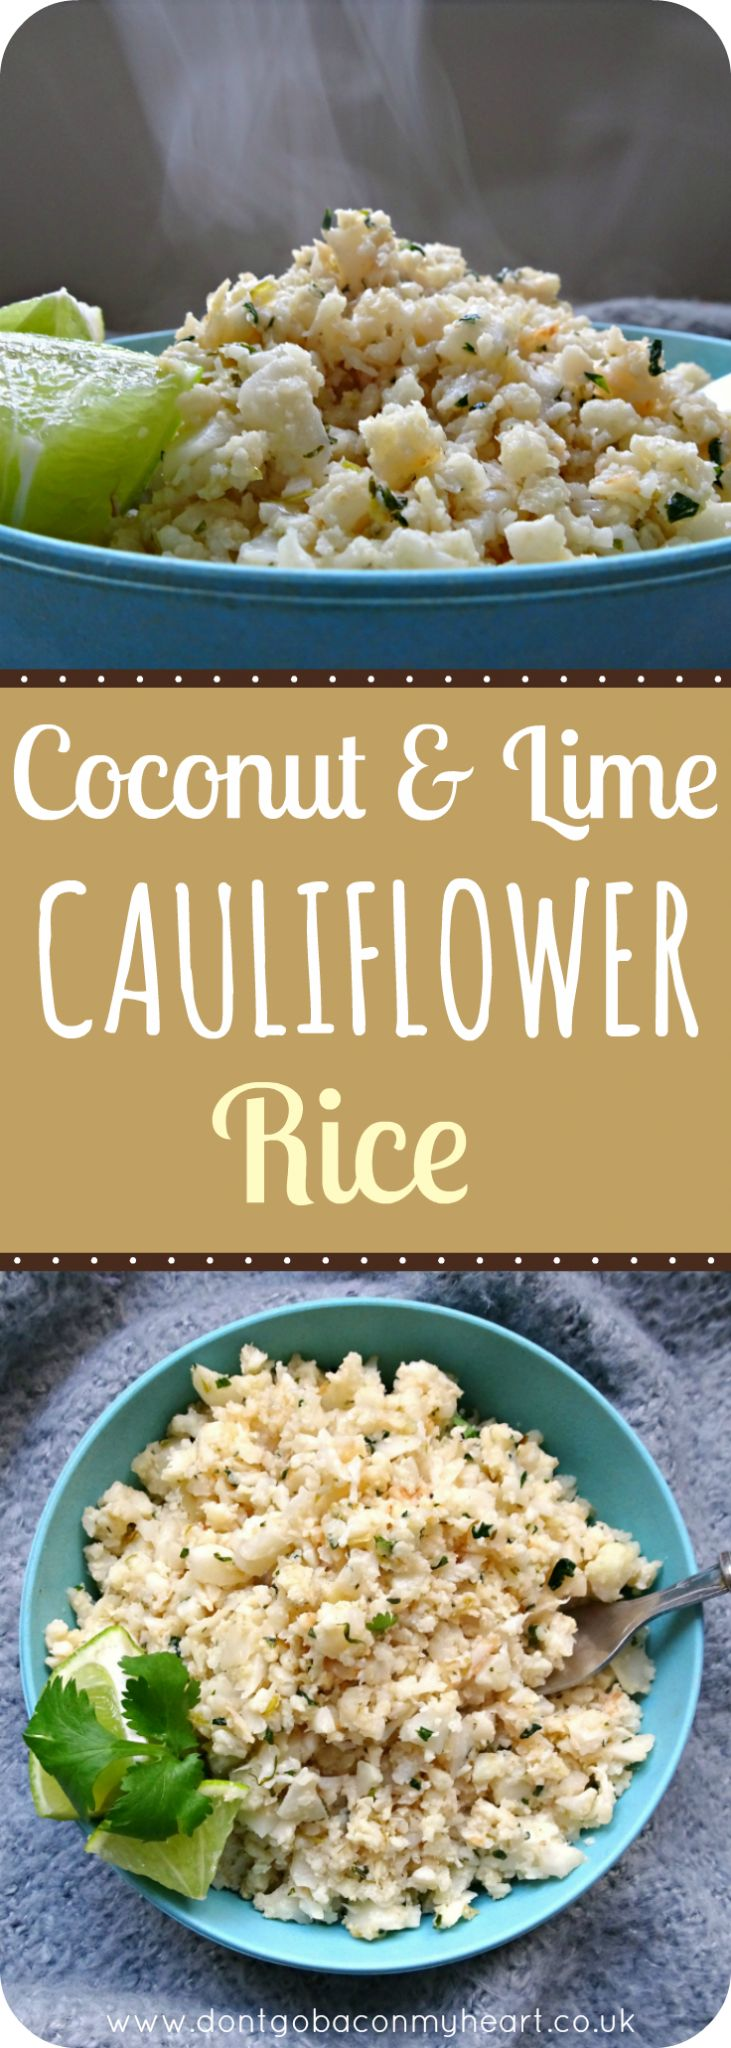 Coconut and Lime Cauliflower Rice is the easiest low-carb alternative that's bursting with flavour. The perfect side dish to your favourite meal.